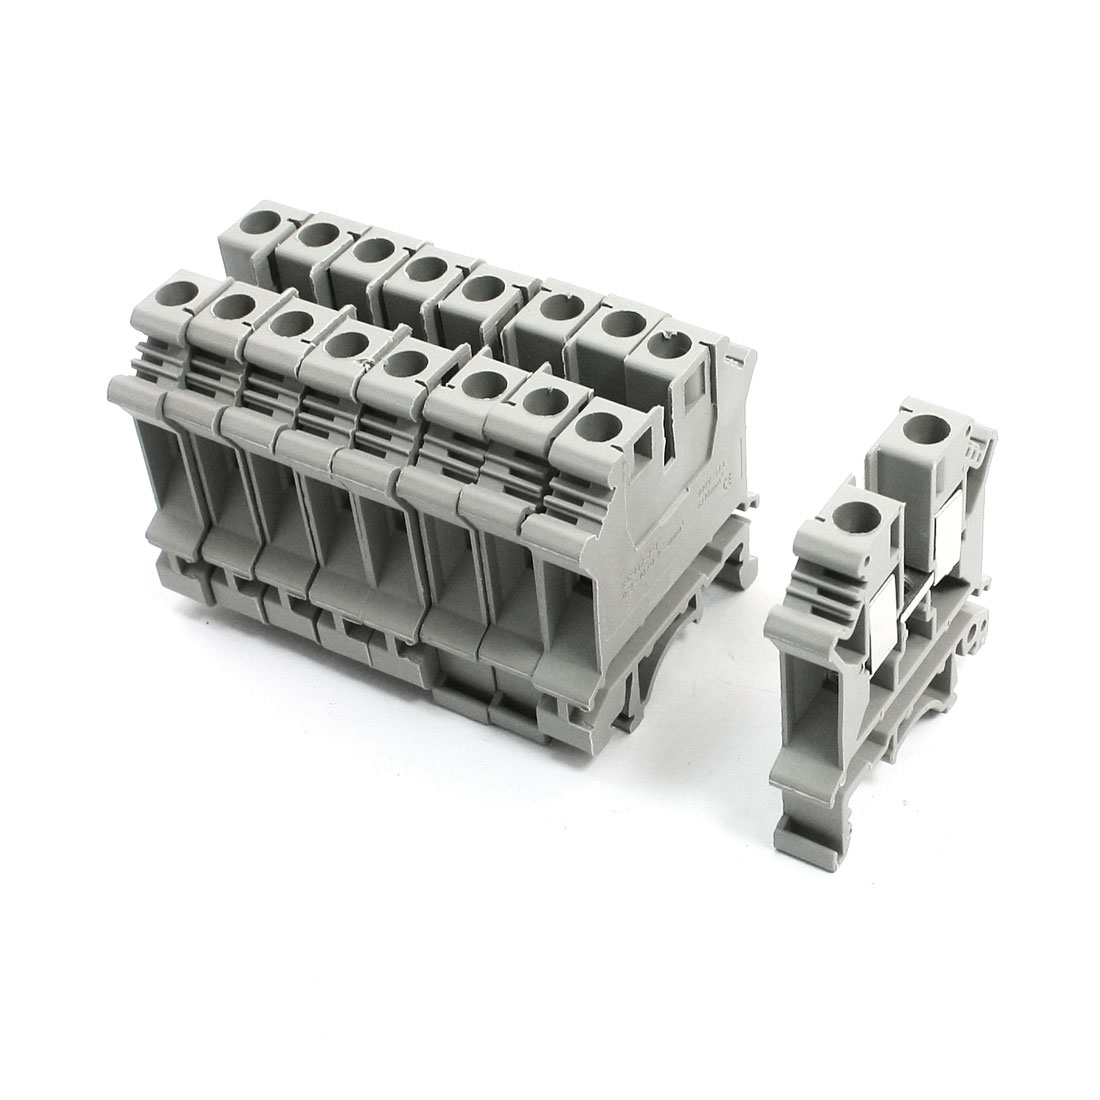 10Pcs Gray Plastic UK6N Screw Clipping Contact Terminal Block 800V 57A